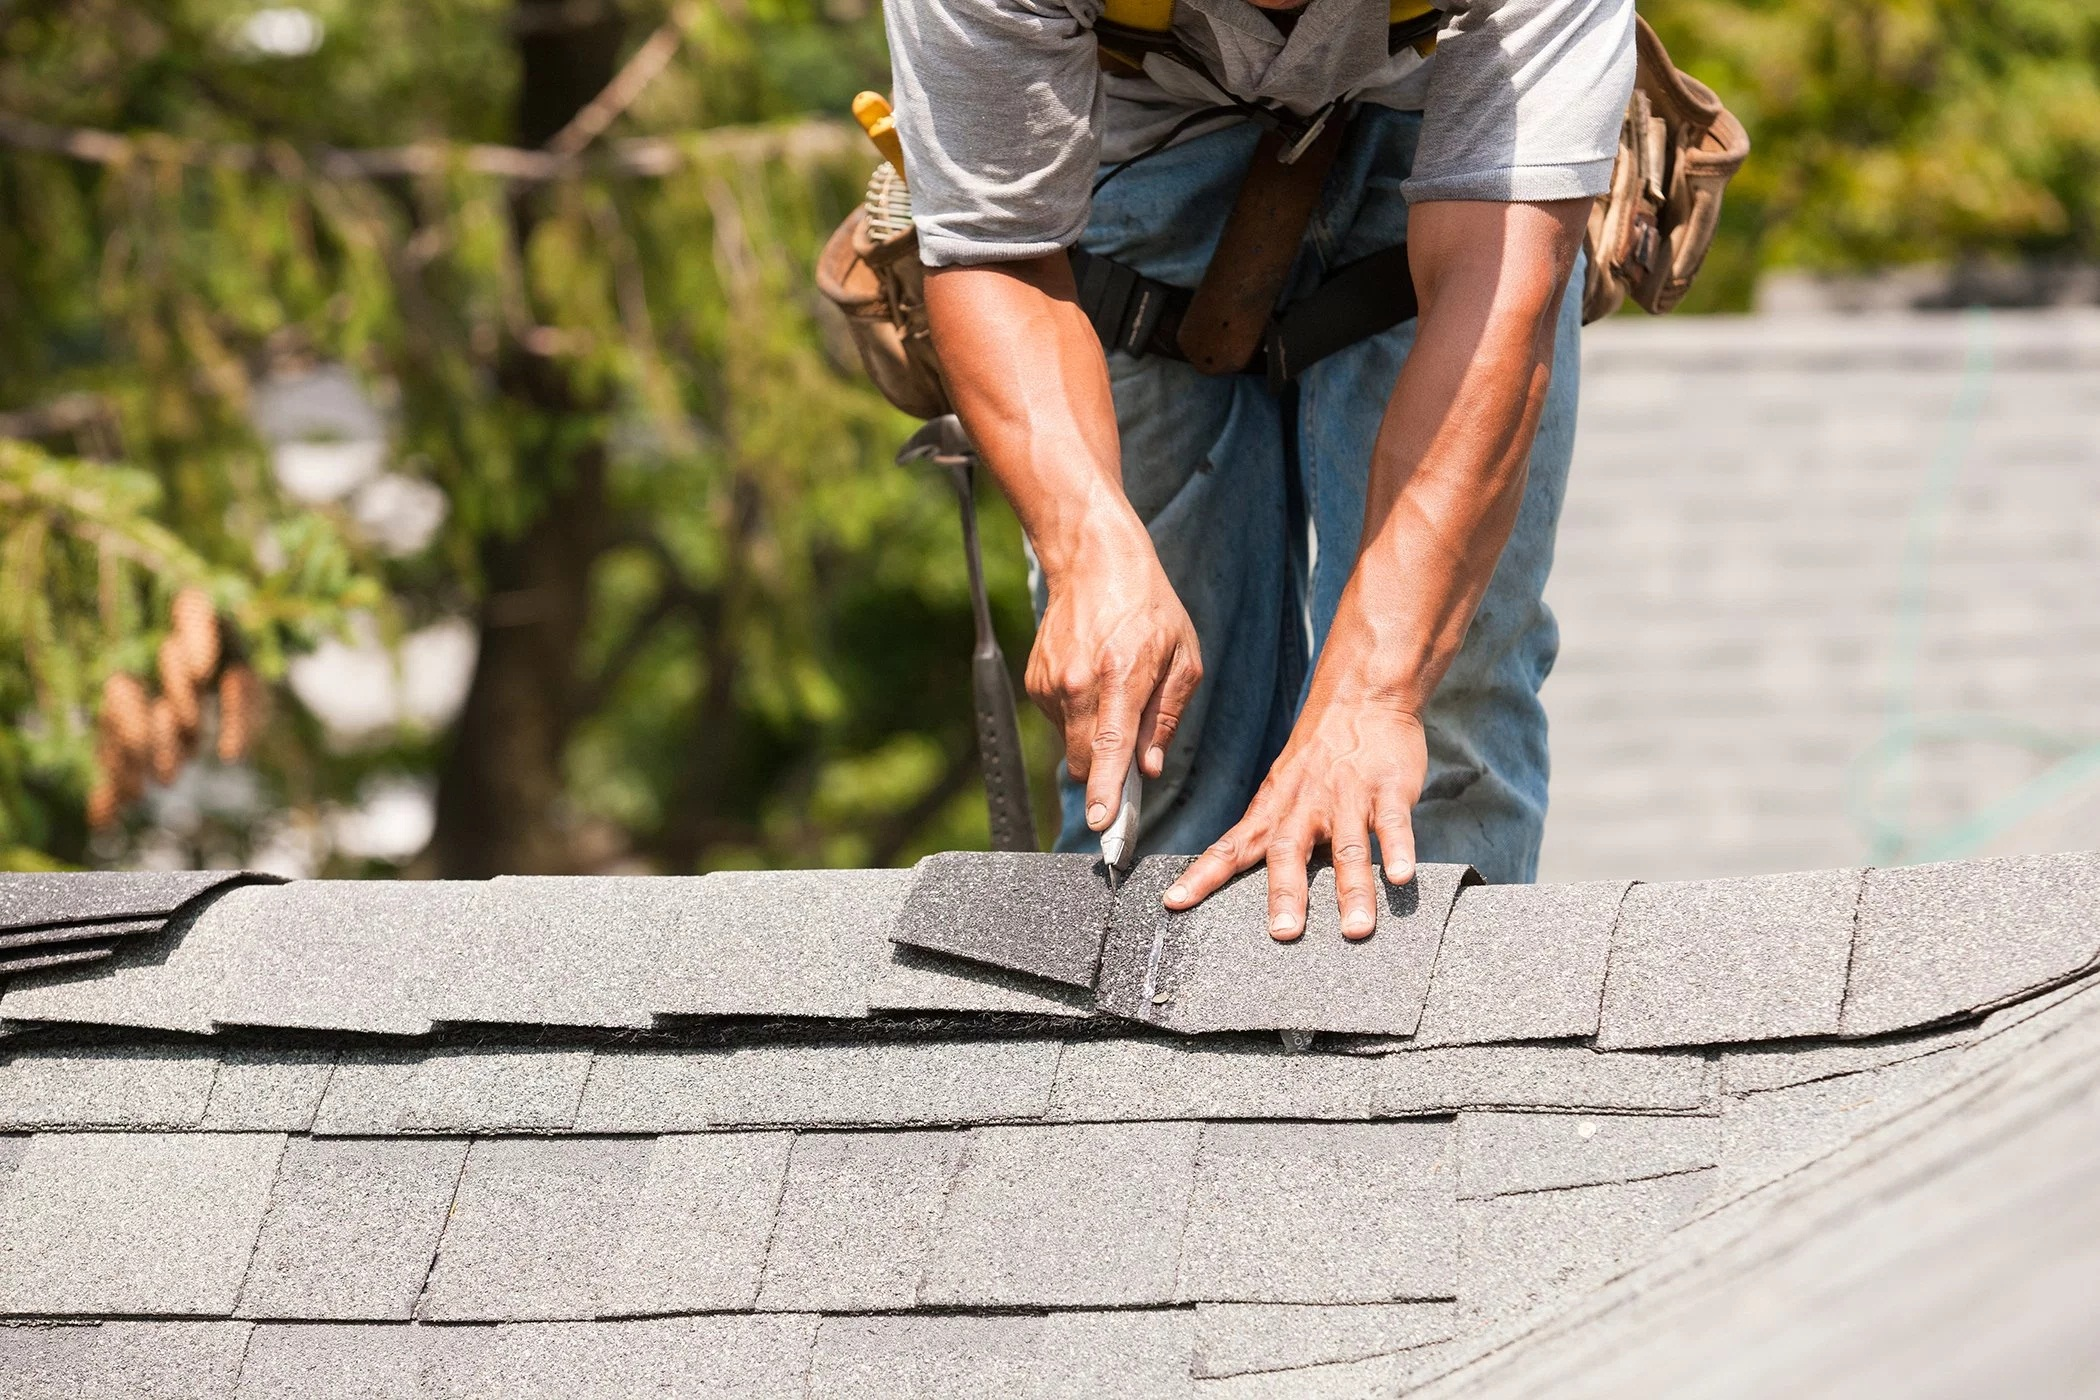 Asphalt shingle roofing is what you should opt for